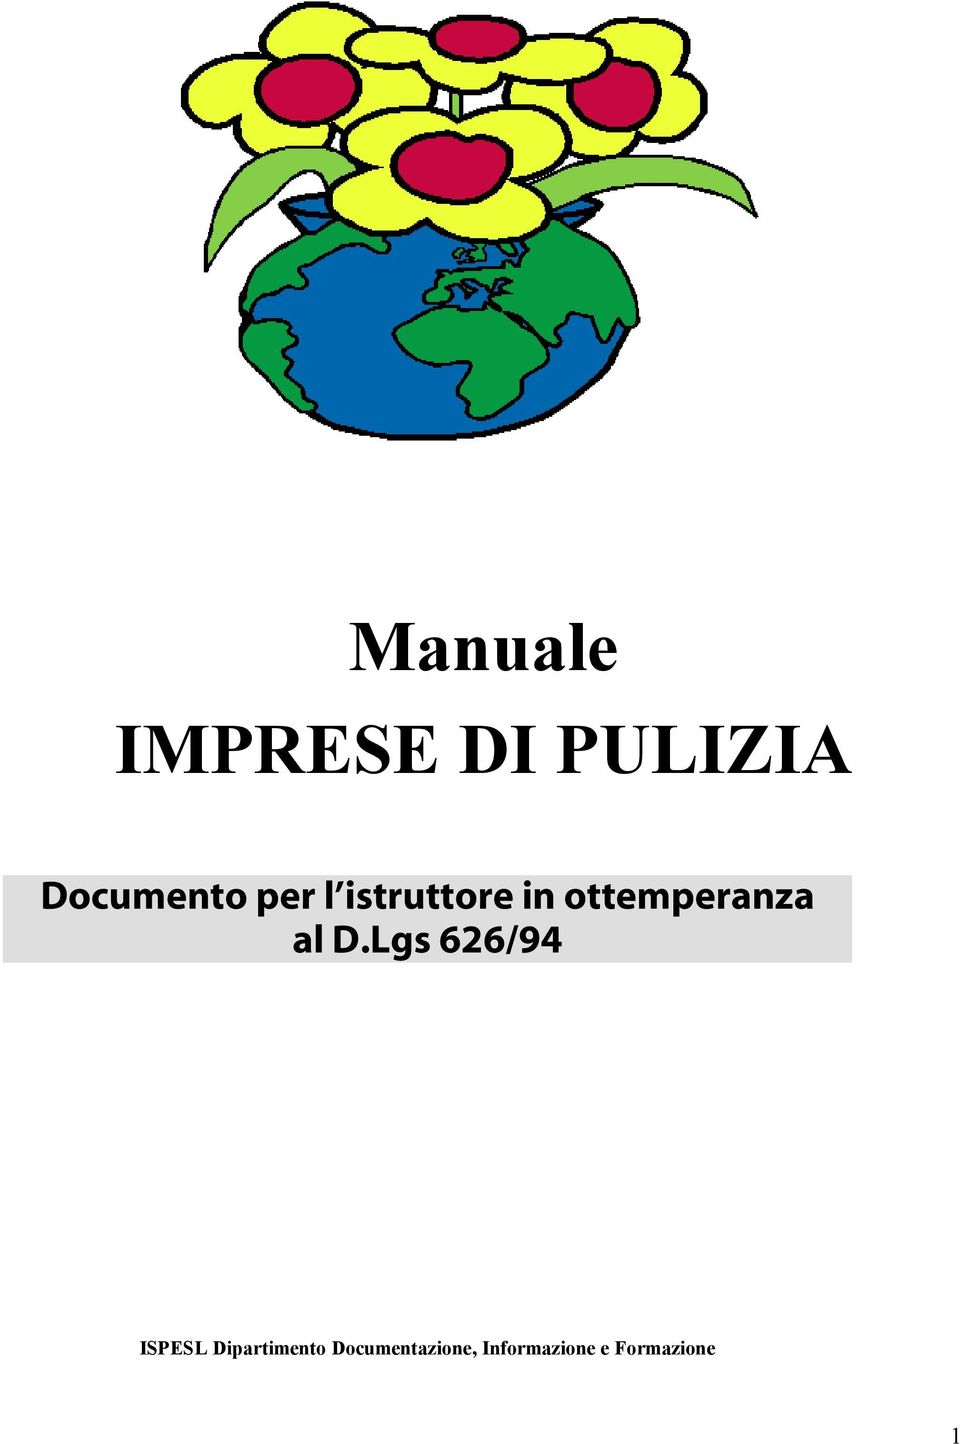 Lgs 626/94 ISPESL Dipartimento